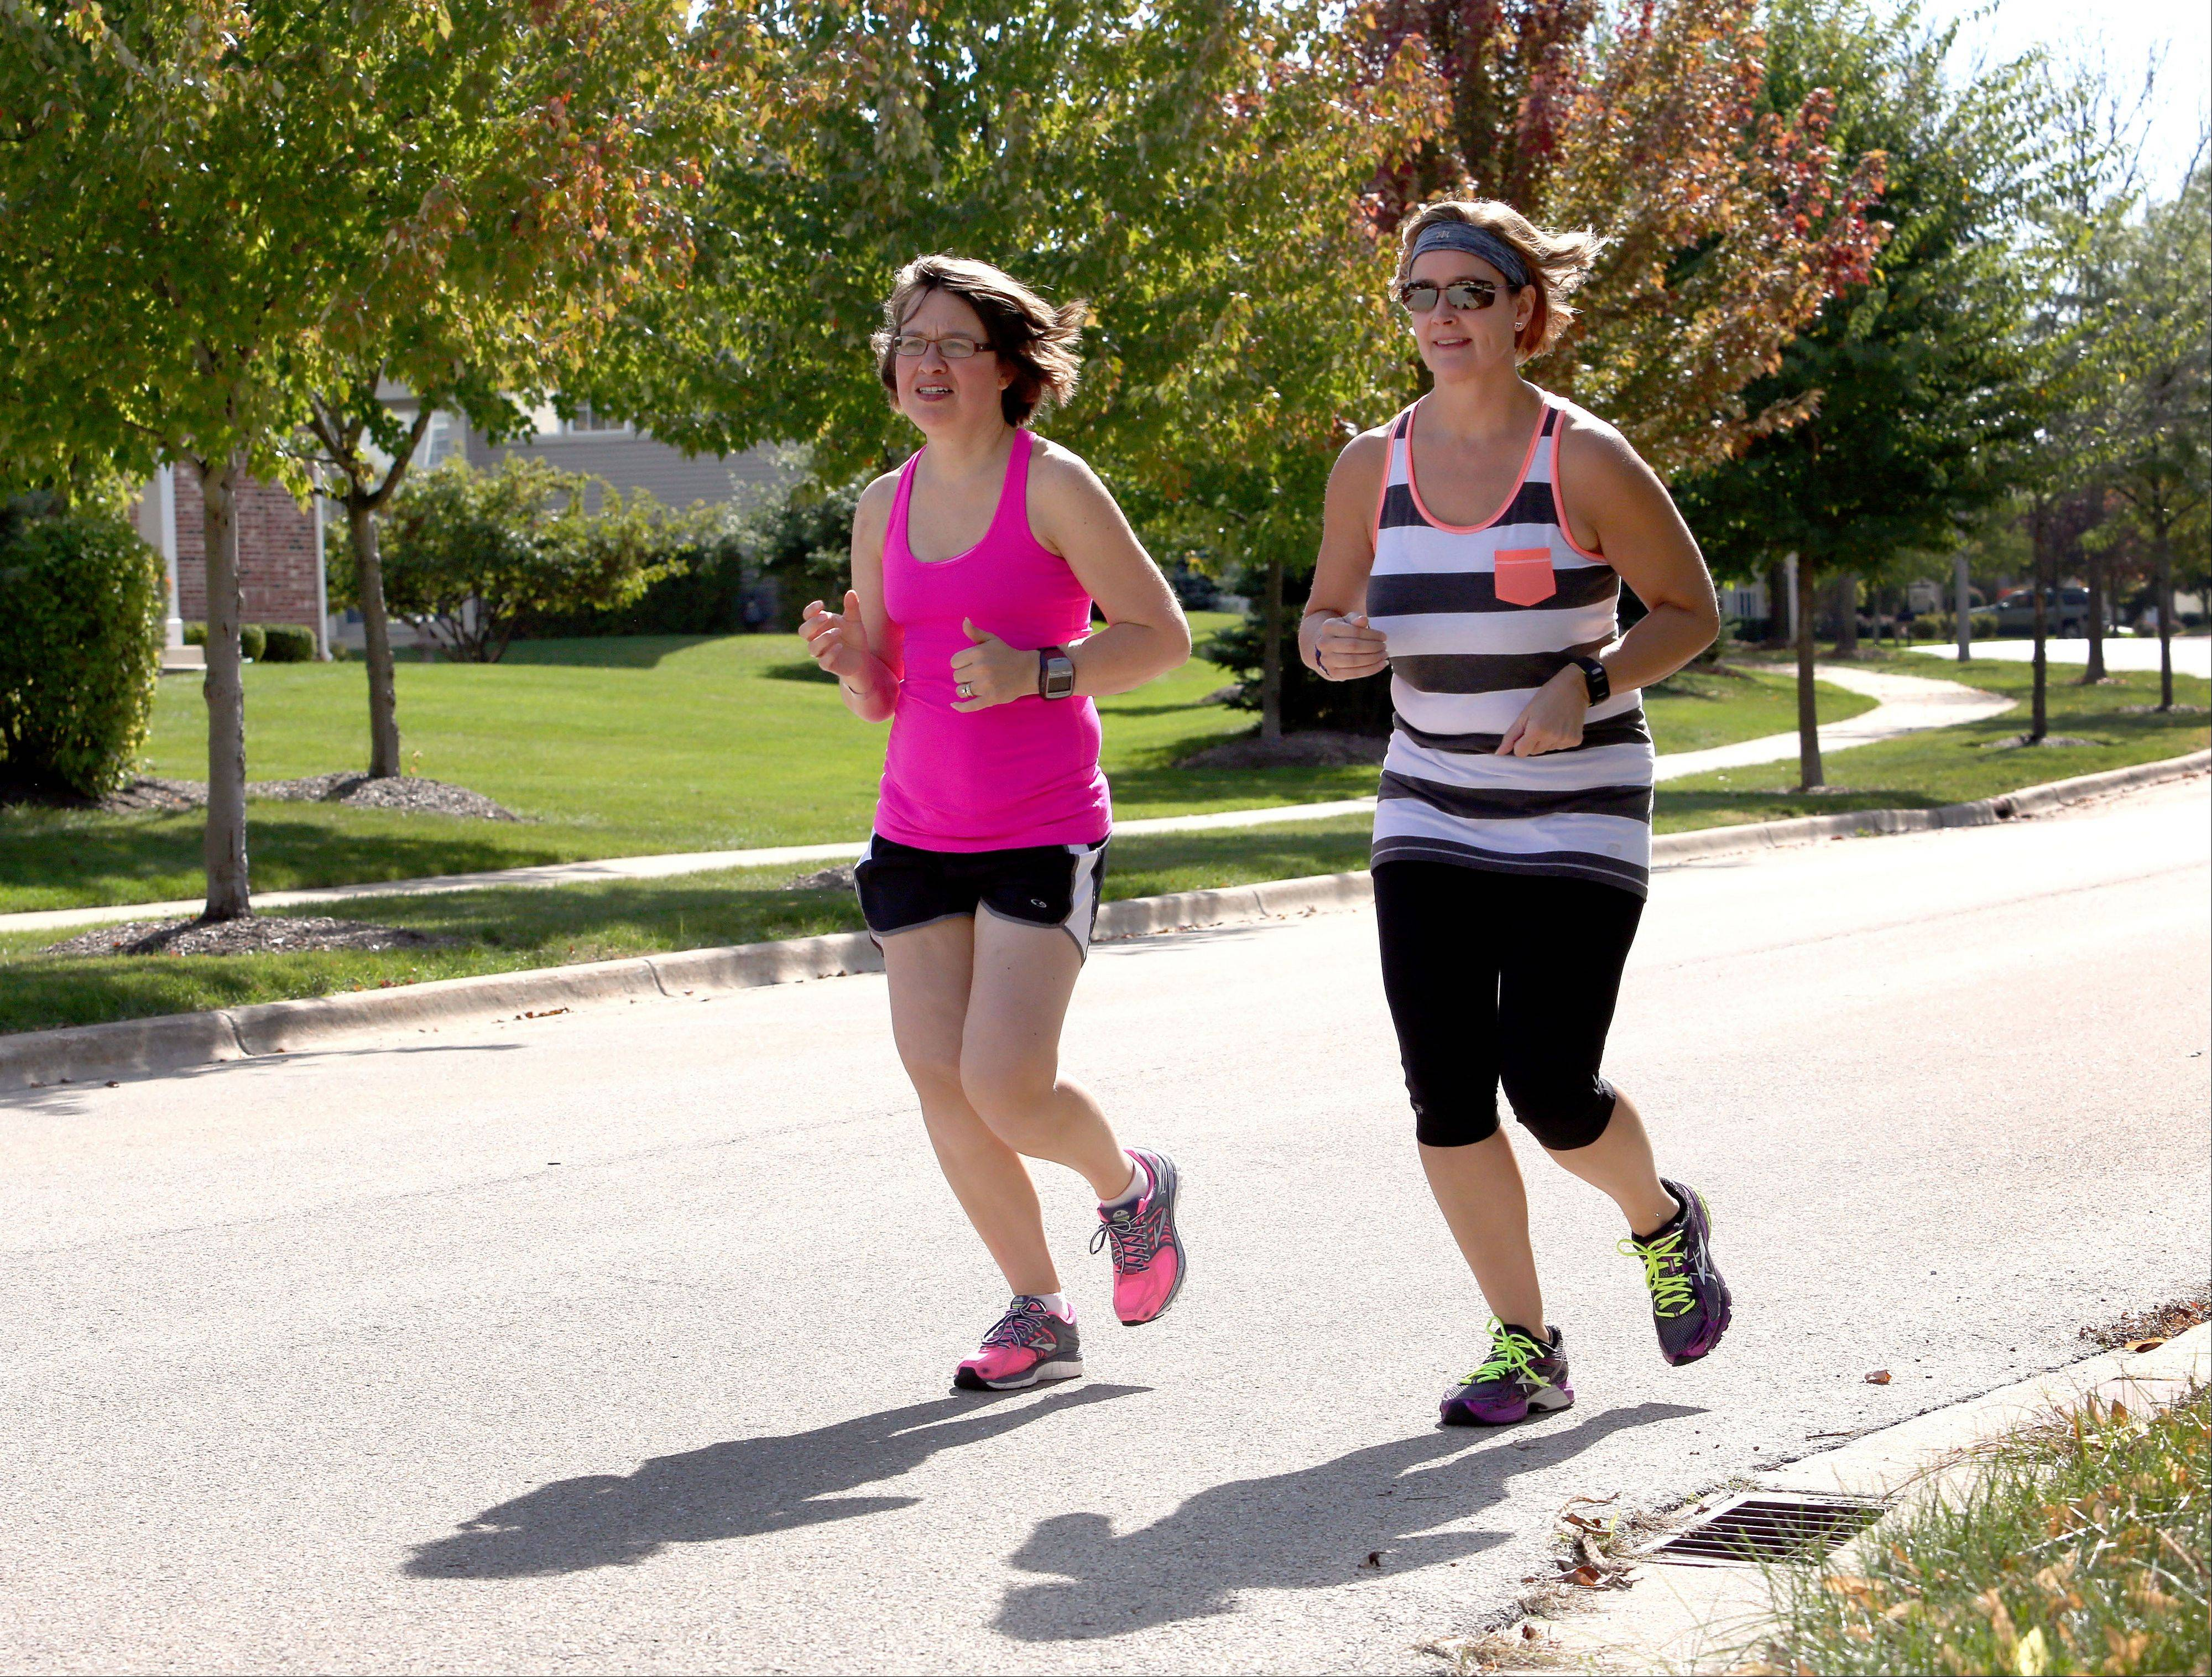 Marathon runners Danielle Steimel, left and Carrie Gasik, both of Aurora, take a short run as they train for the Chicago Marathon on Sunday.